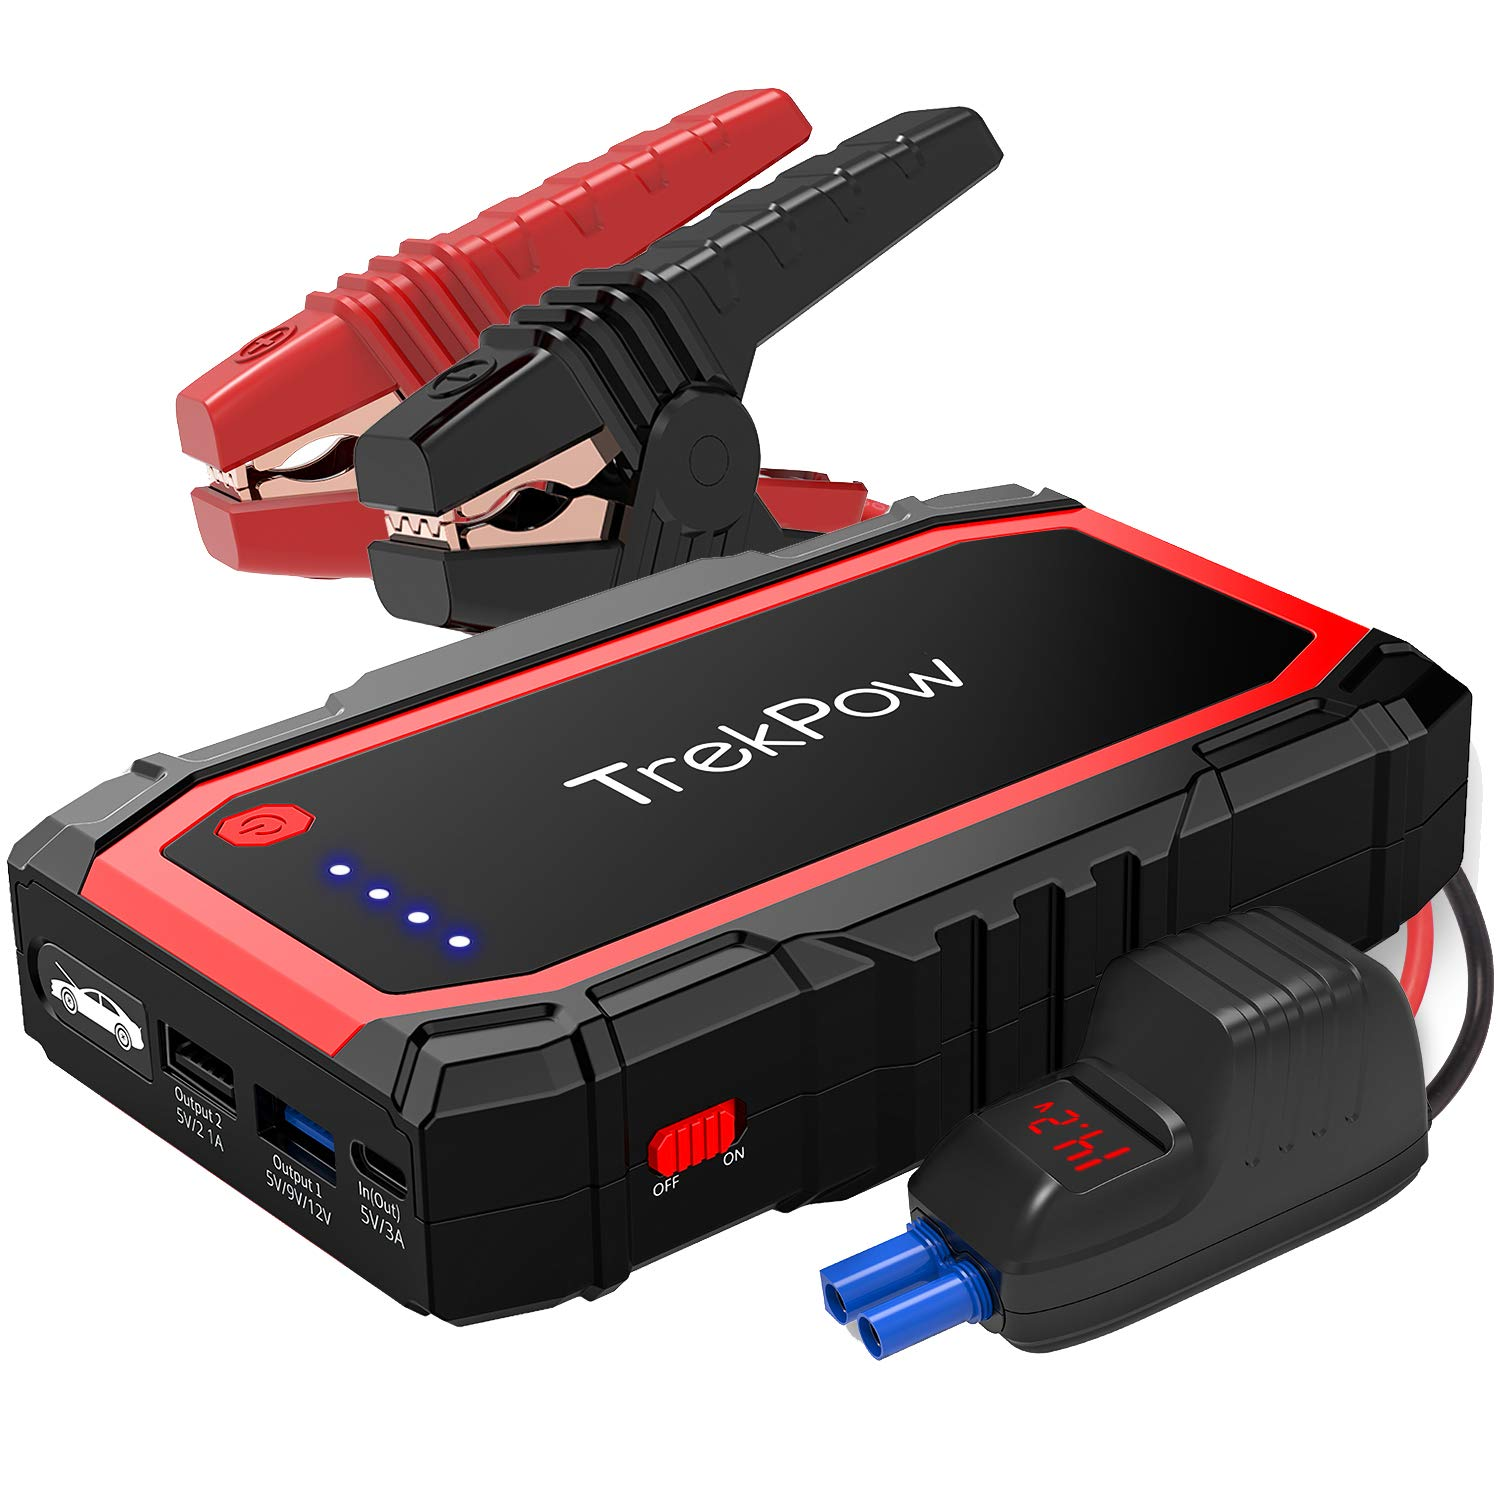 TrekPow A18 800A Peak Car Jump Starter (up to 6.0L Gas/5.0L Diesel Engine)12V Auto Battery Booster Jump Pack Portable Jump Starter with Smart Jumper Cables QC3.0 Quick Charger & Flashlight by ABOX